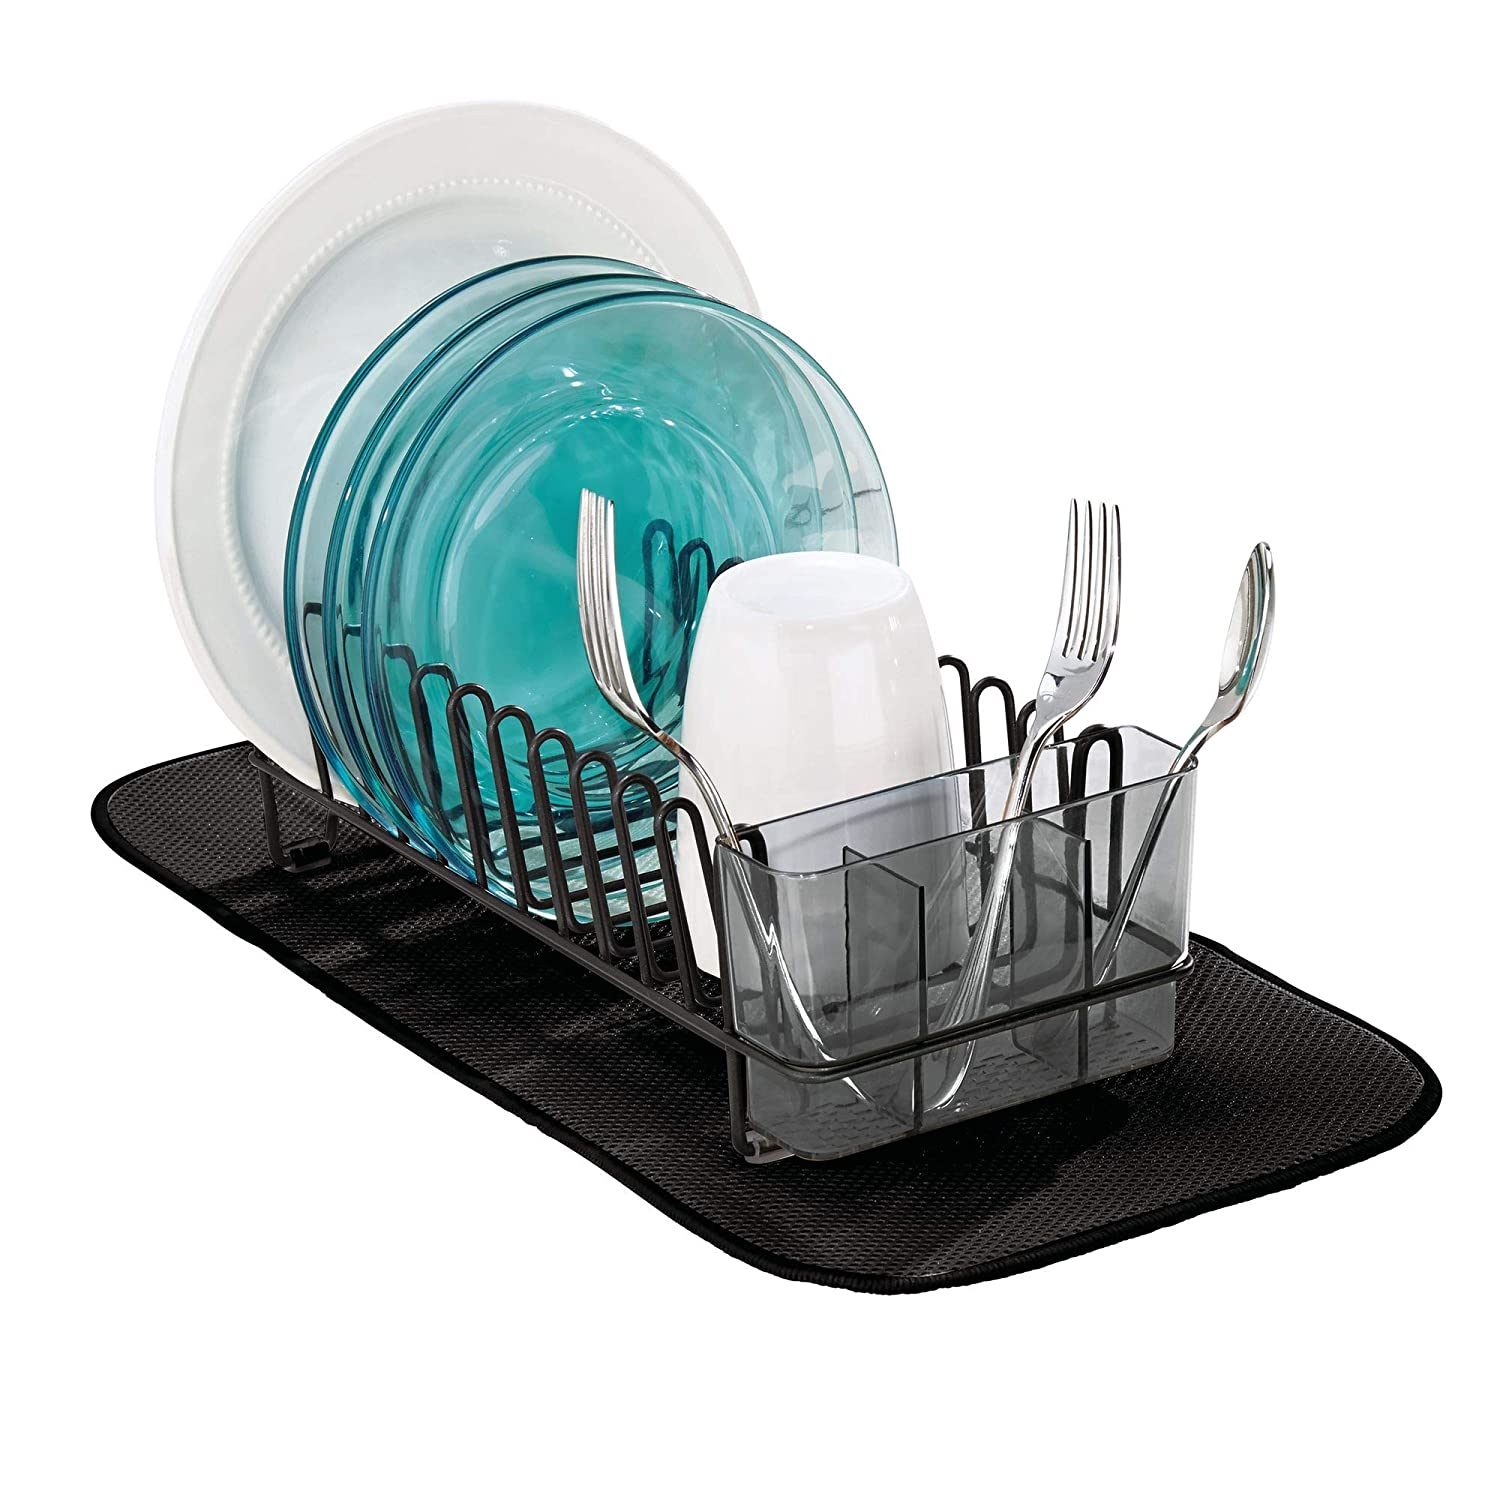 mDesign Compact Modern Metal Dish Drying Rack and Microfiber Mat Set for Kitchen Countertop, Sink - Drain and Dry Wine Glasses, Bowls and Dishes - Removable Cutlery Tray - Set of 2 - Black/Smoke Gray